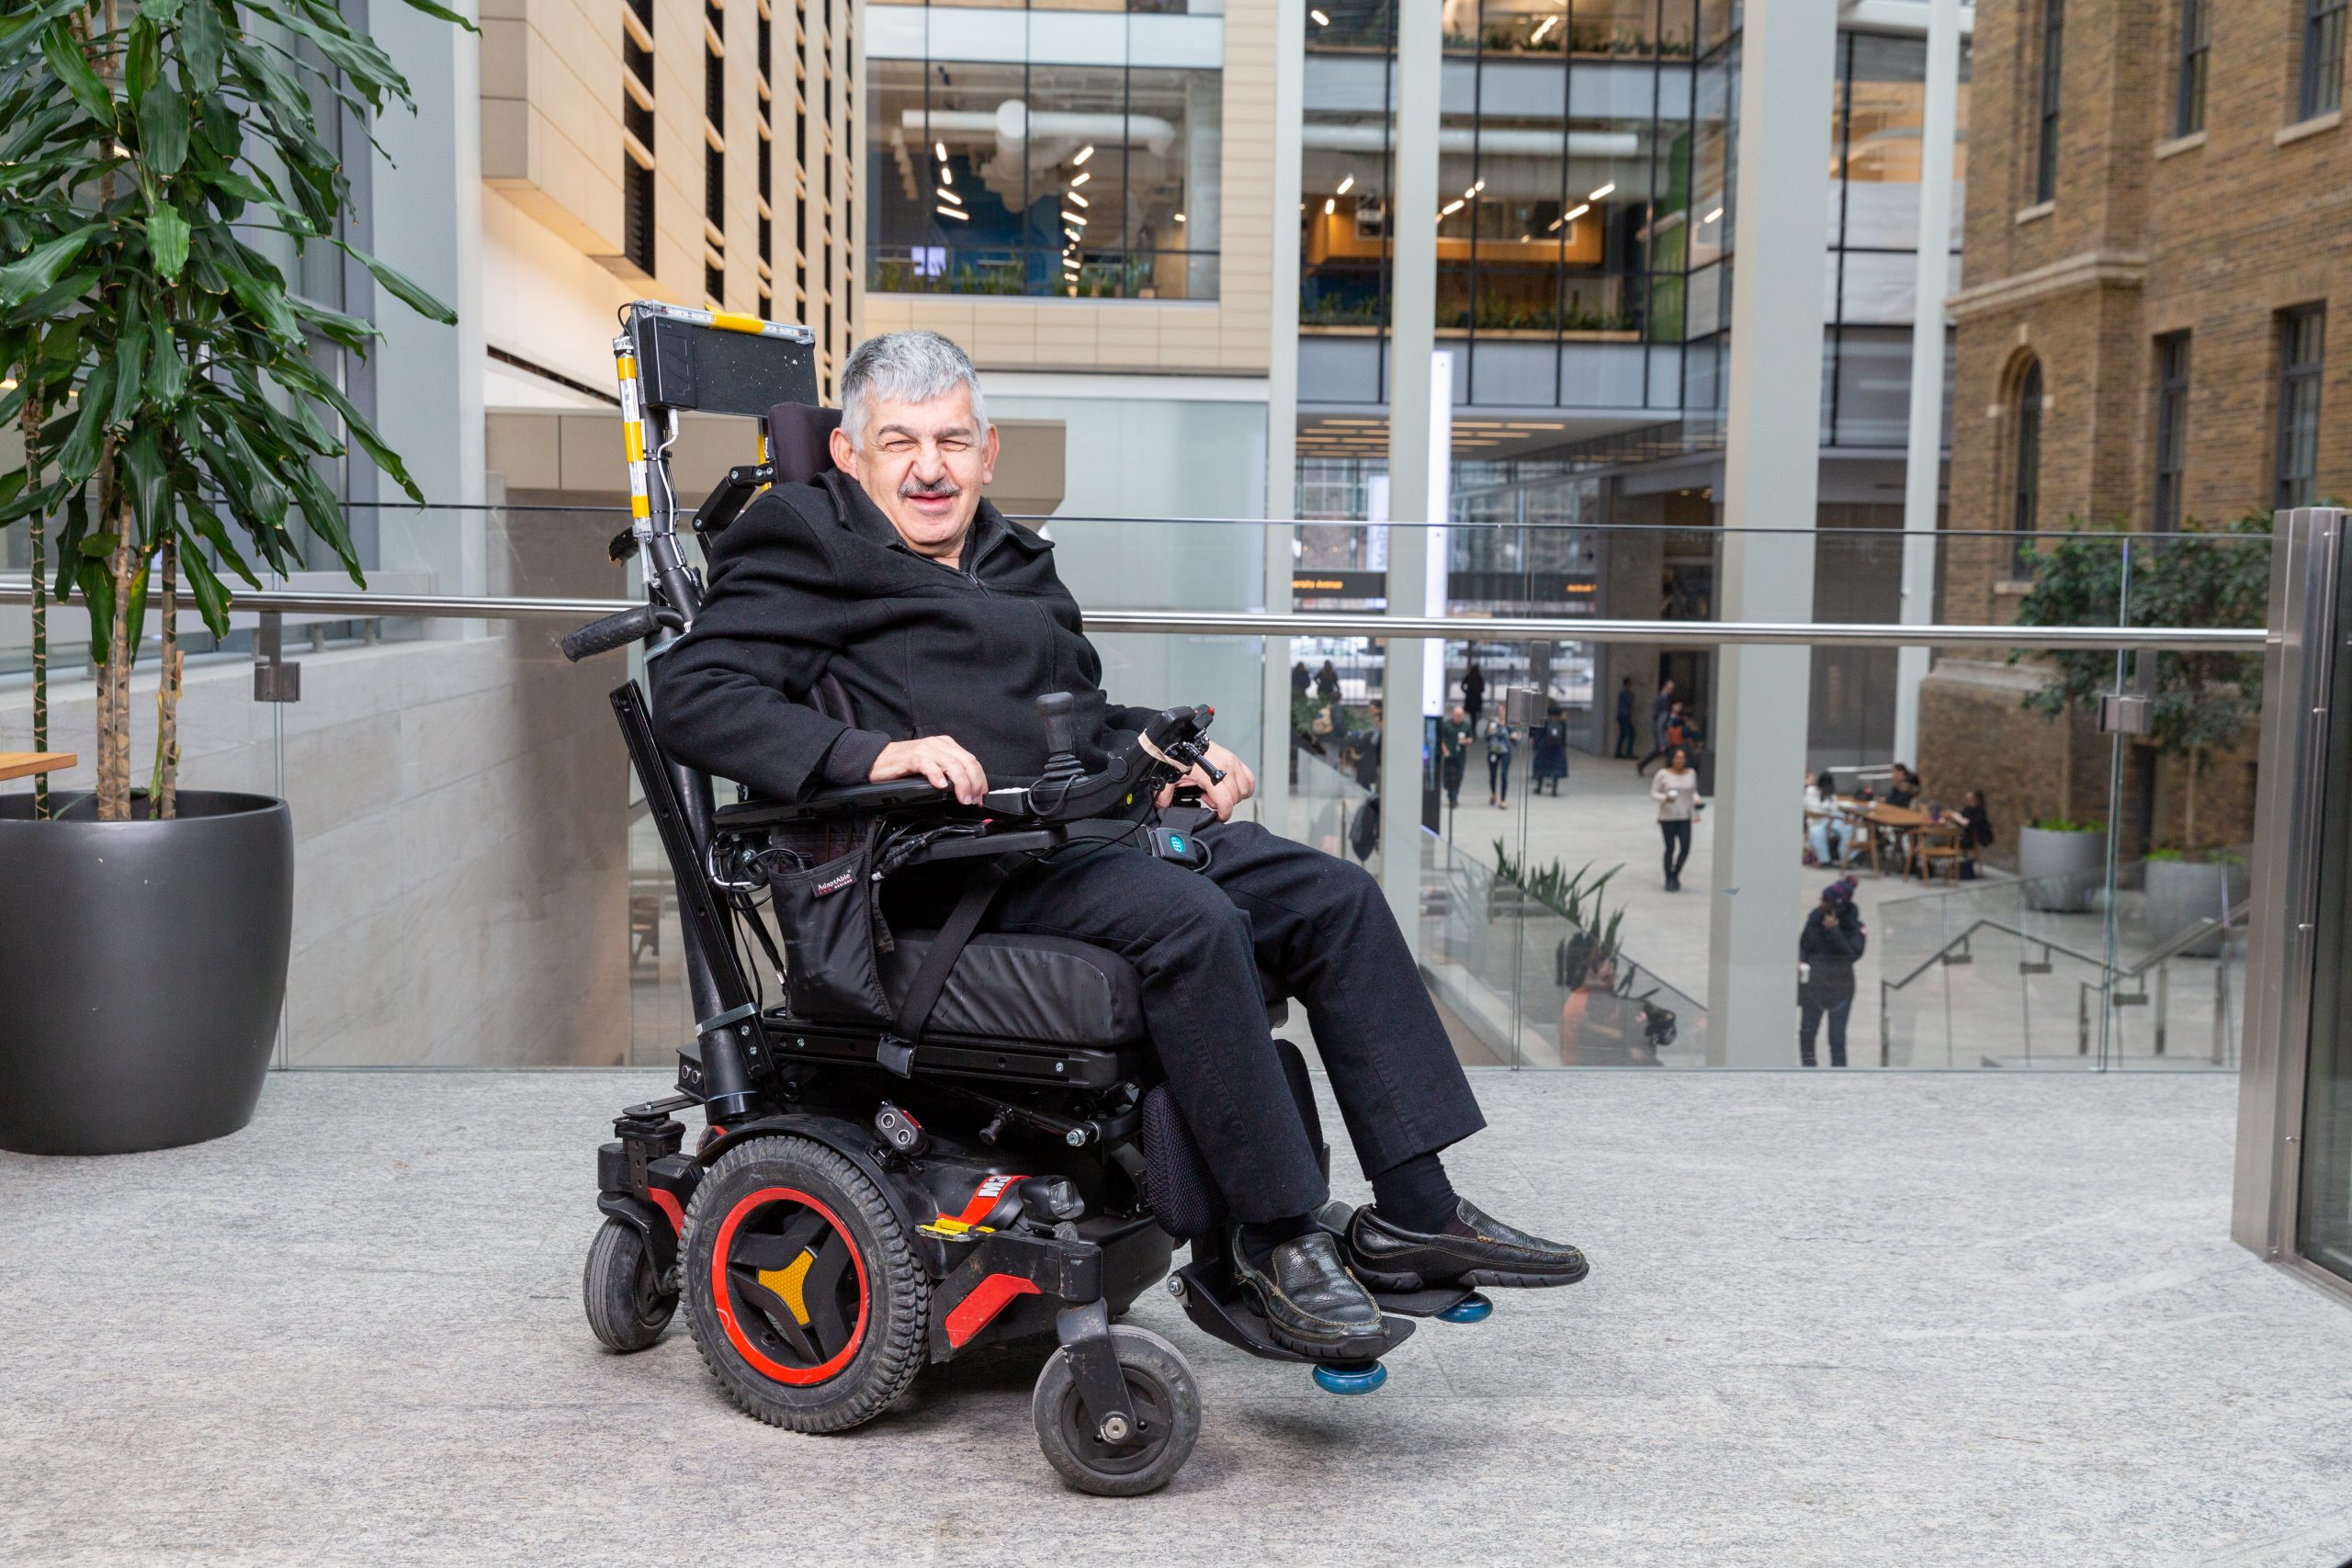 Photo of Hassan in a power wheelchair, a customer using the Braze Mobility product